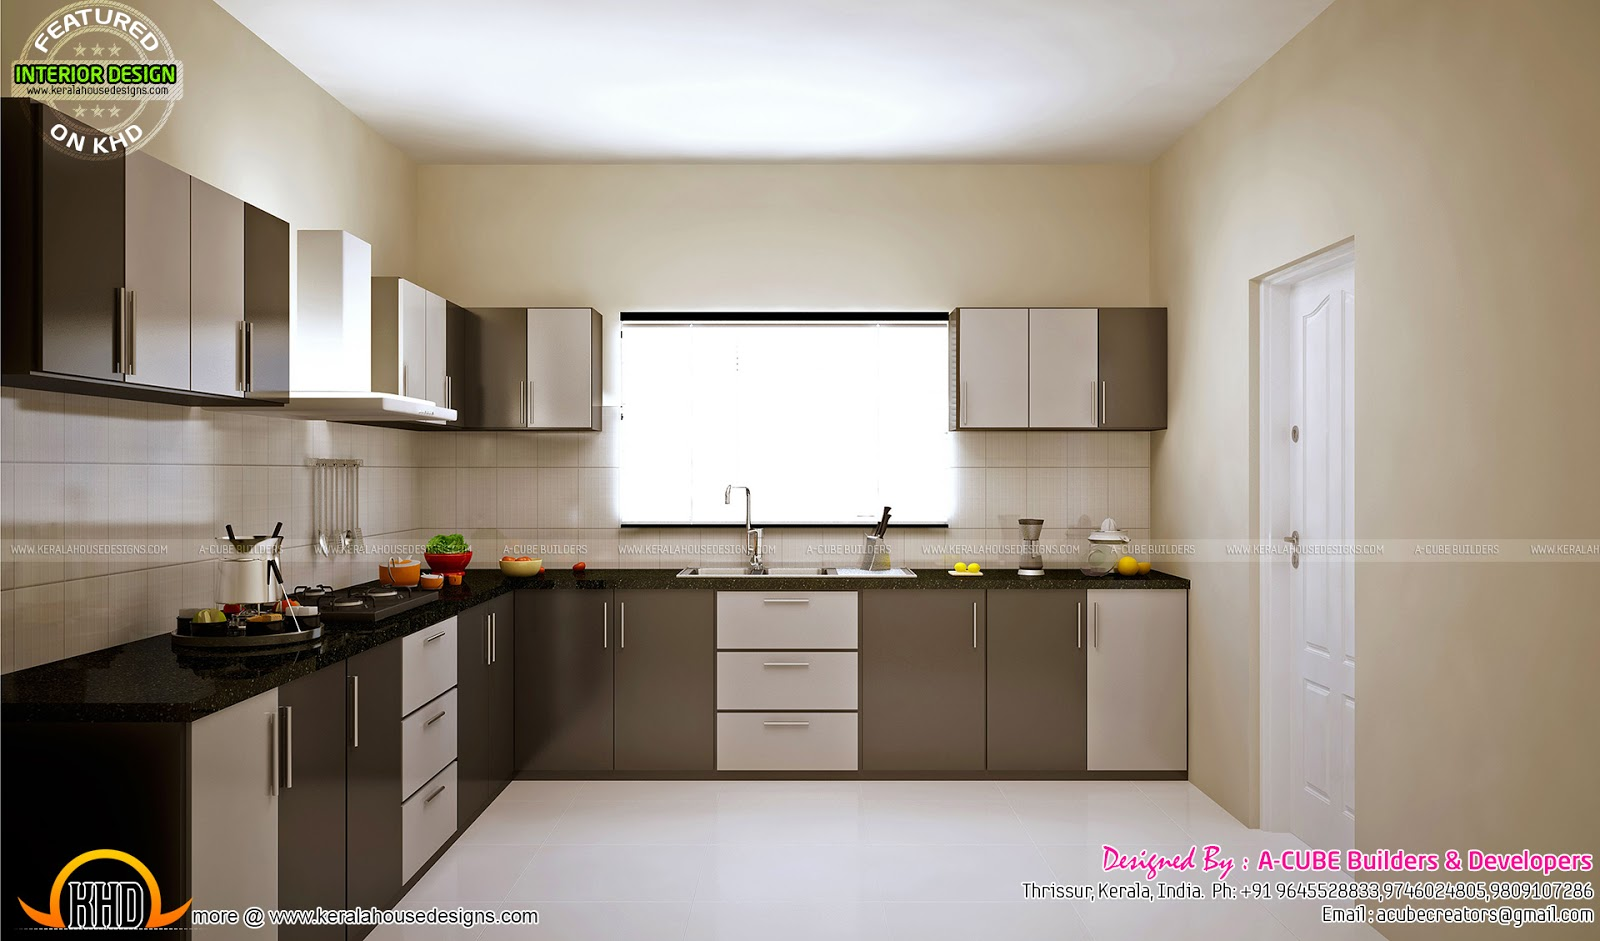 Kitchen and master bedroom designs kerala home design for New kitchen designs in kerala